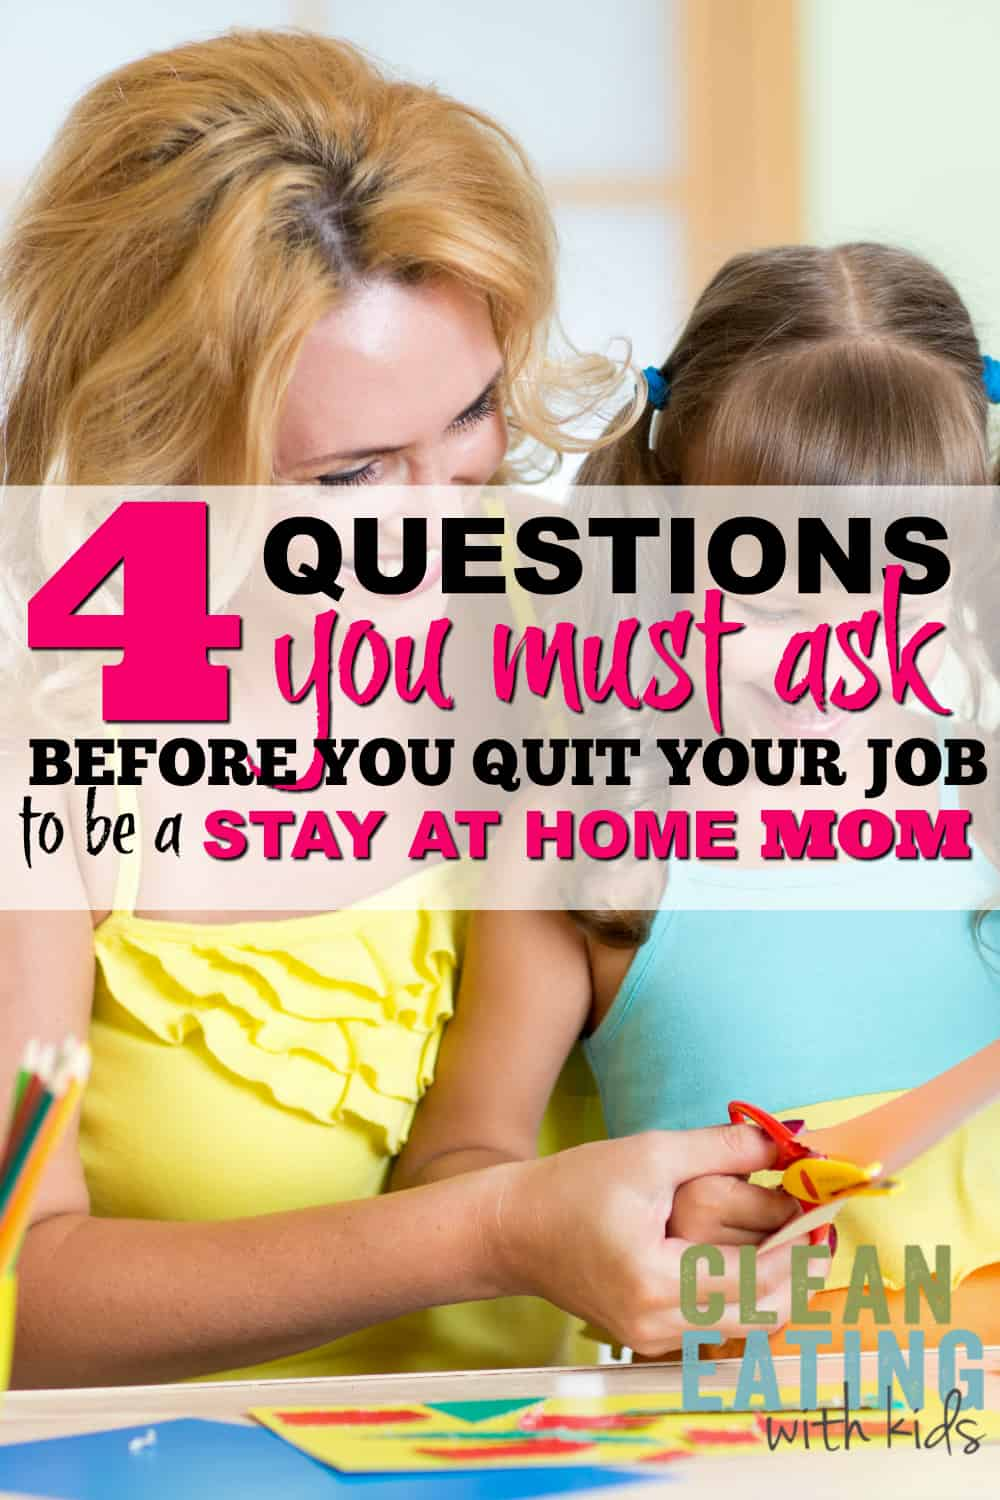 4 Things you need to know before you quit your job to become a Stay at Home Mom.